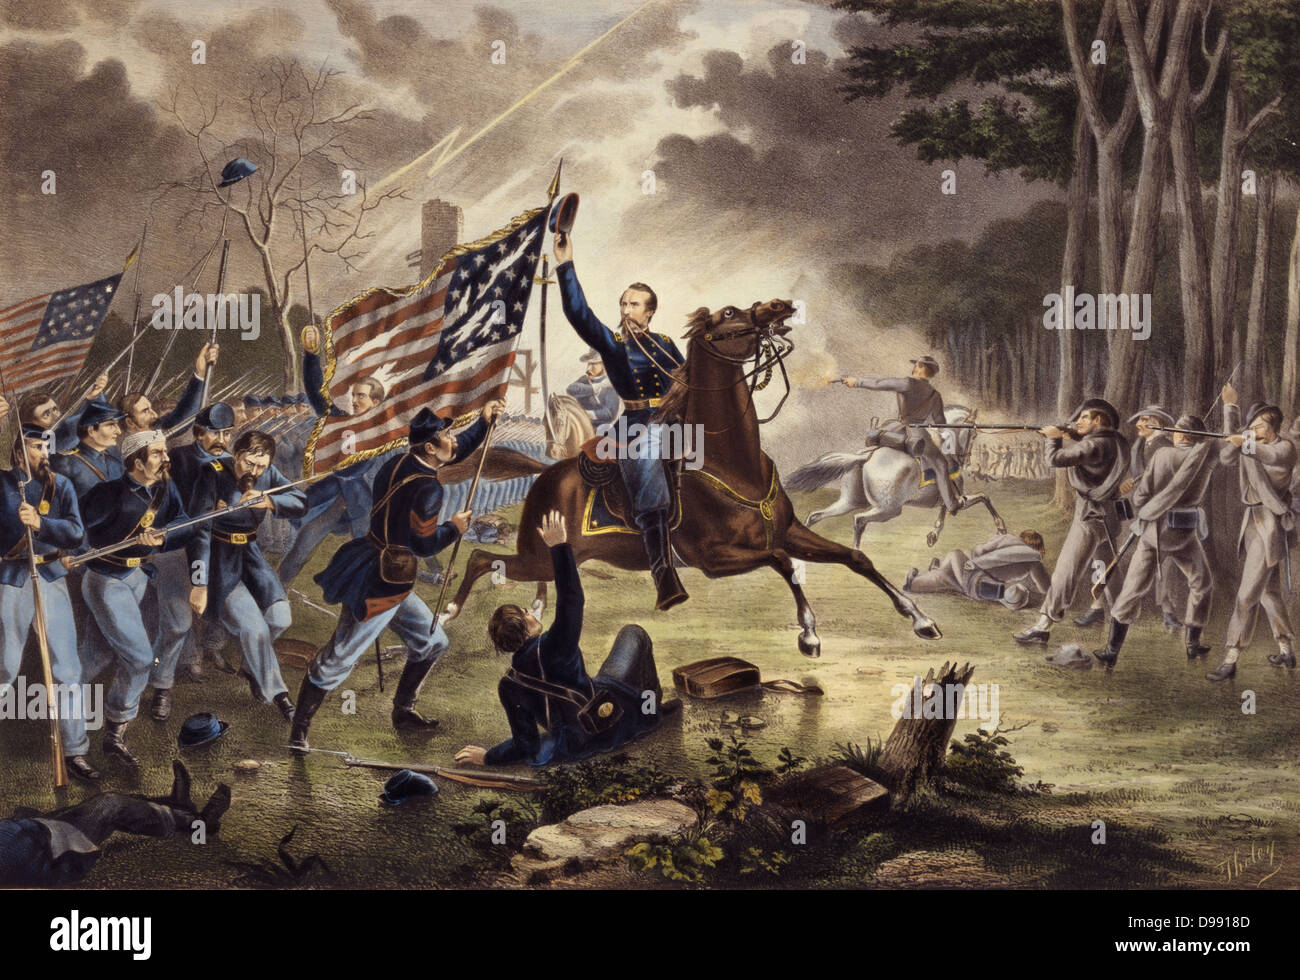 the us civil war 1861 1865 essay Civil war amputation essay  the united states as simply the civil war as well as other sectional names, was a civil war fought from 1861 to 1865 to determine.